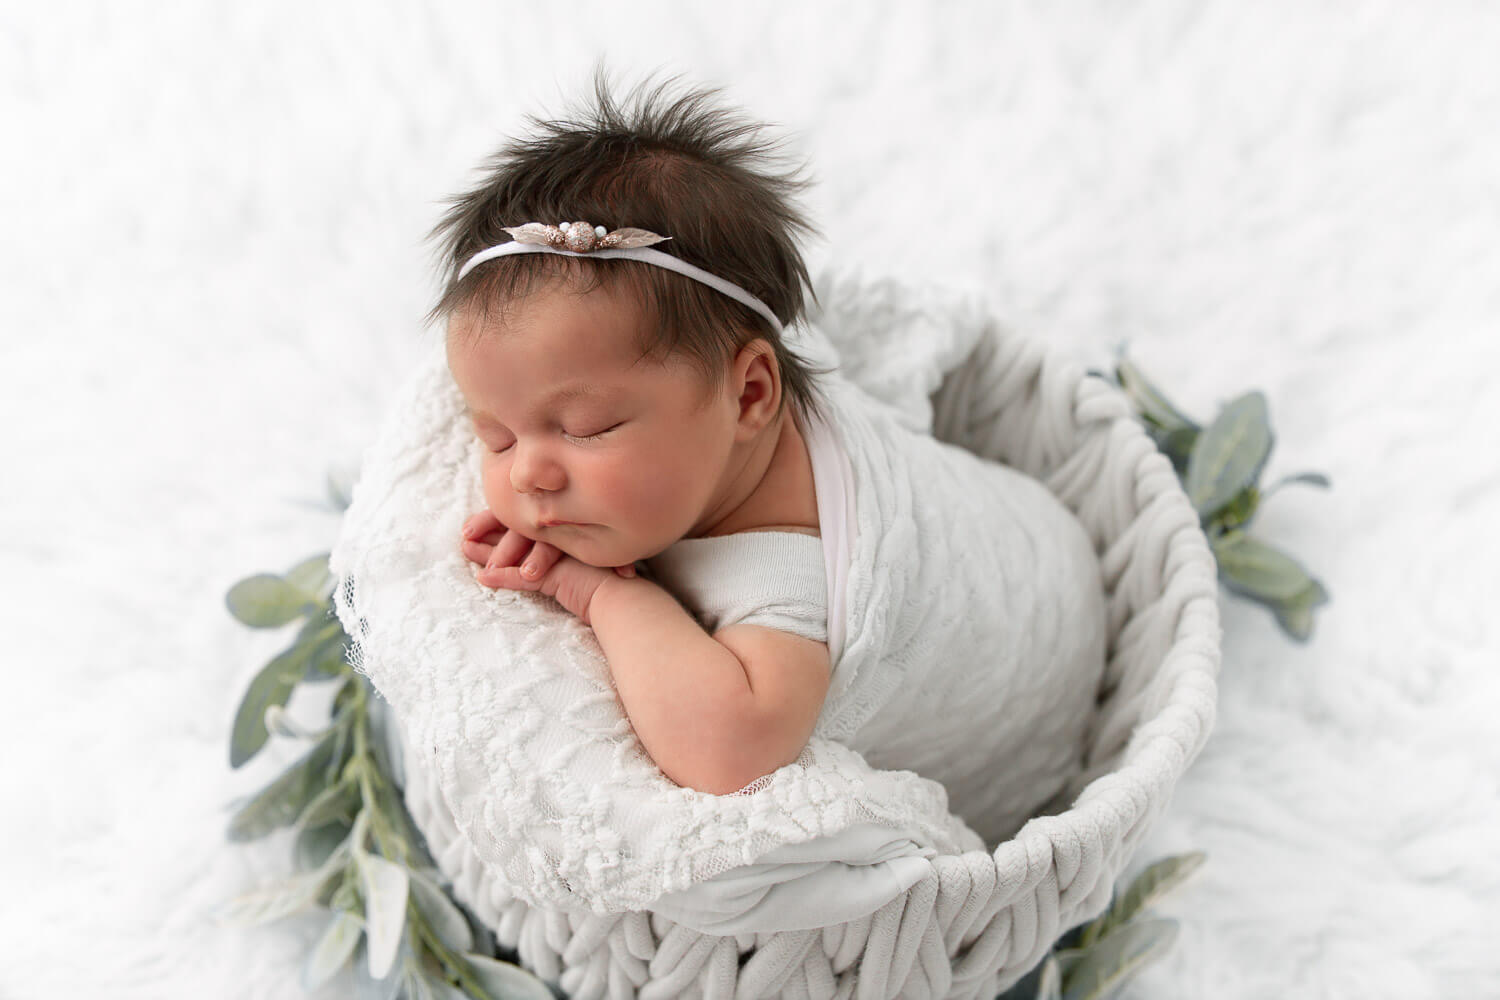 baby girl wrapped in white resting her head on hands in a white bucket on white flokati fur